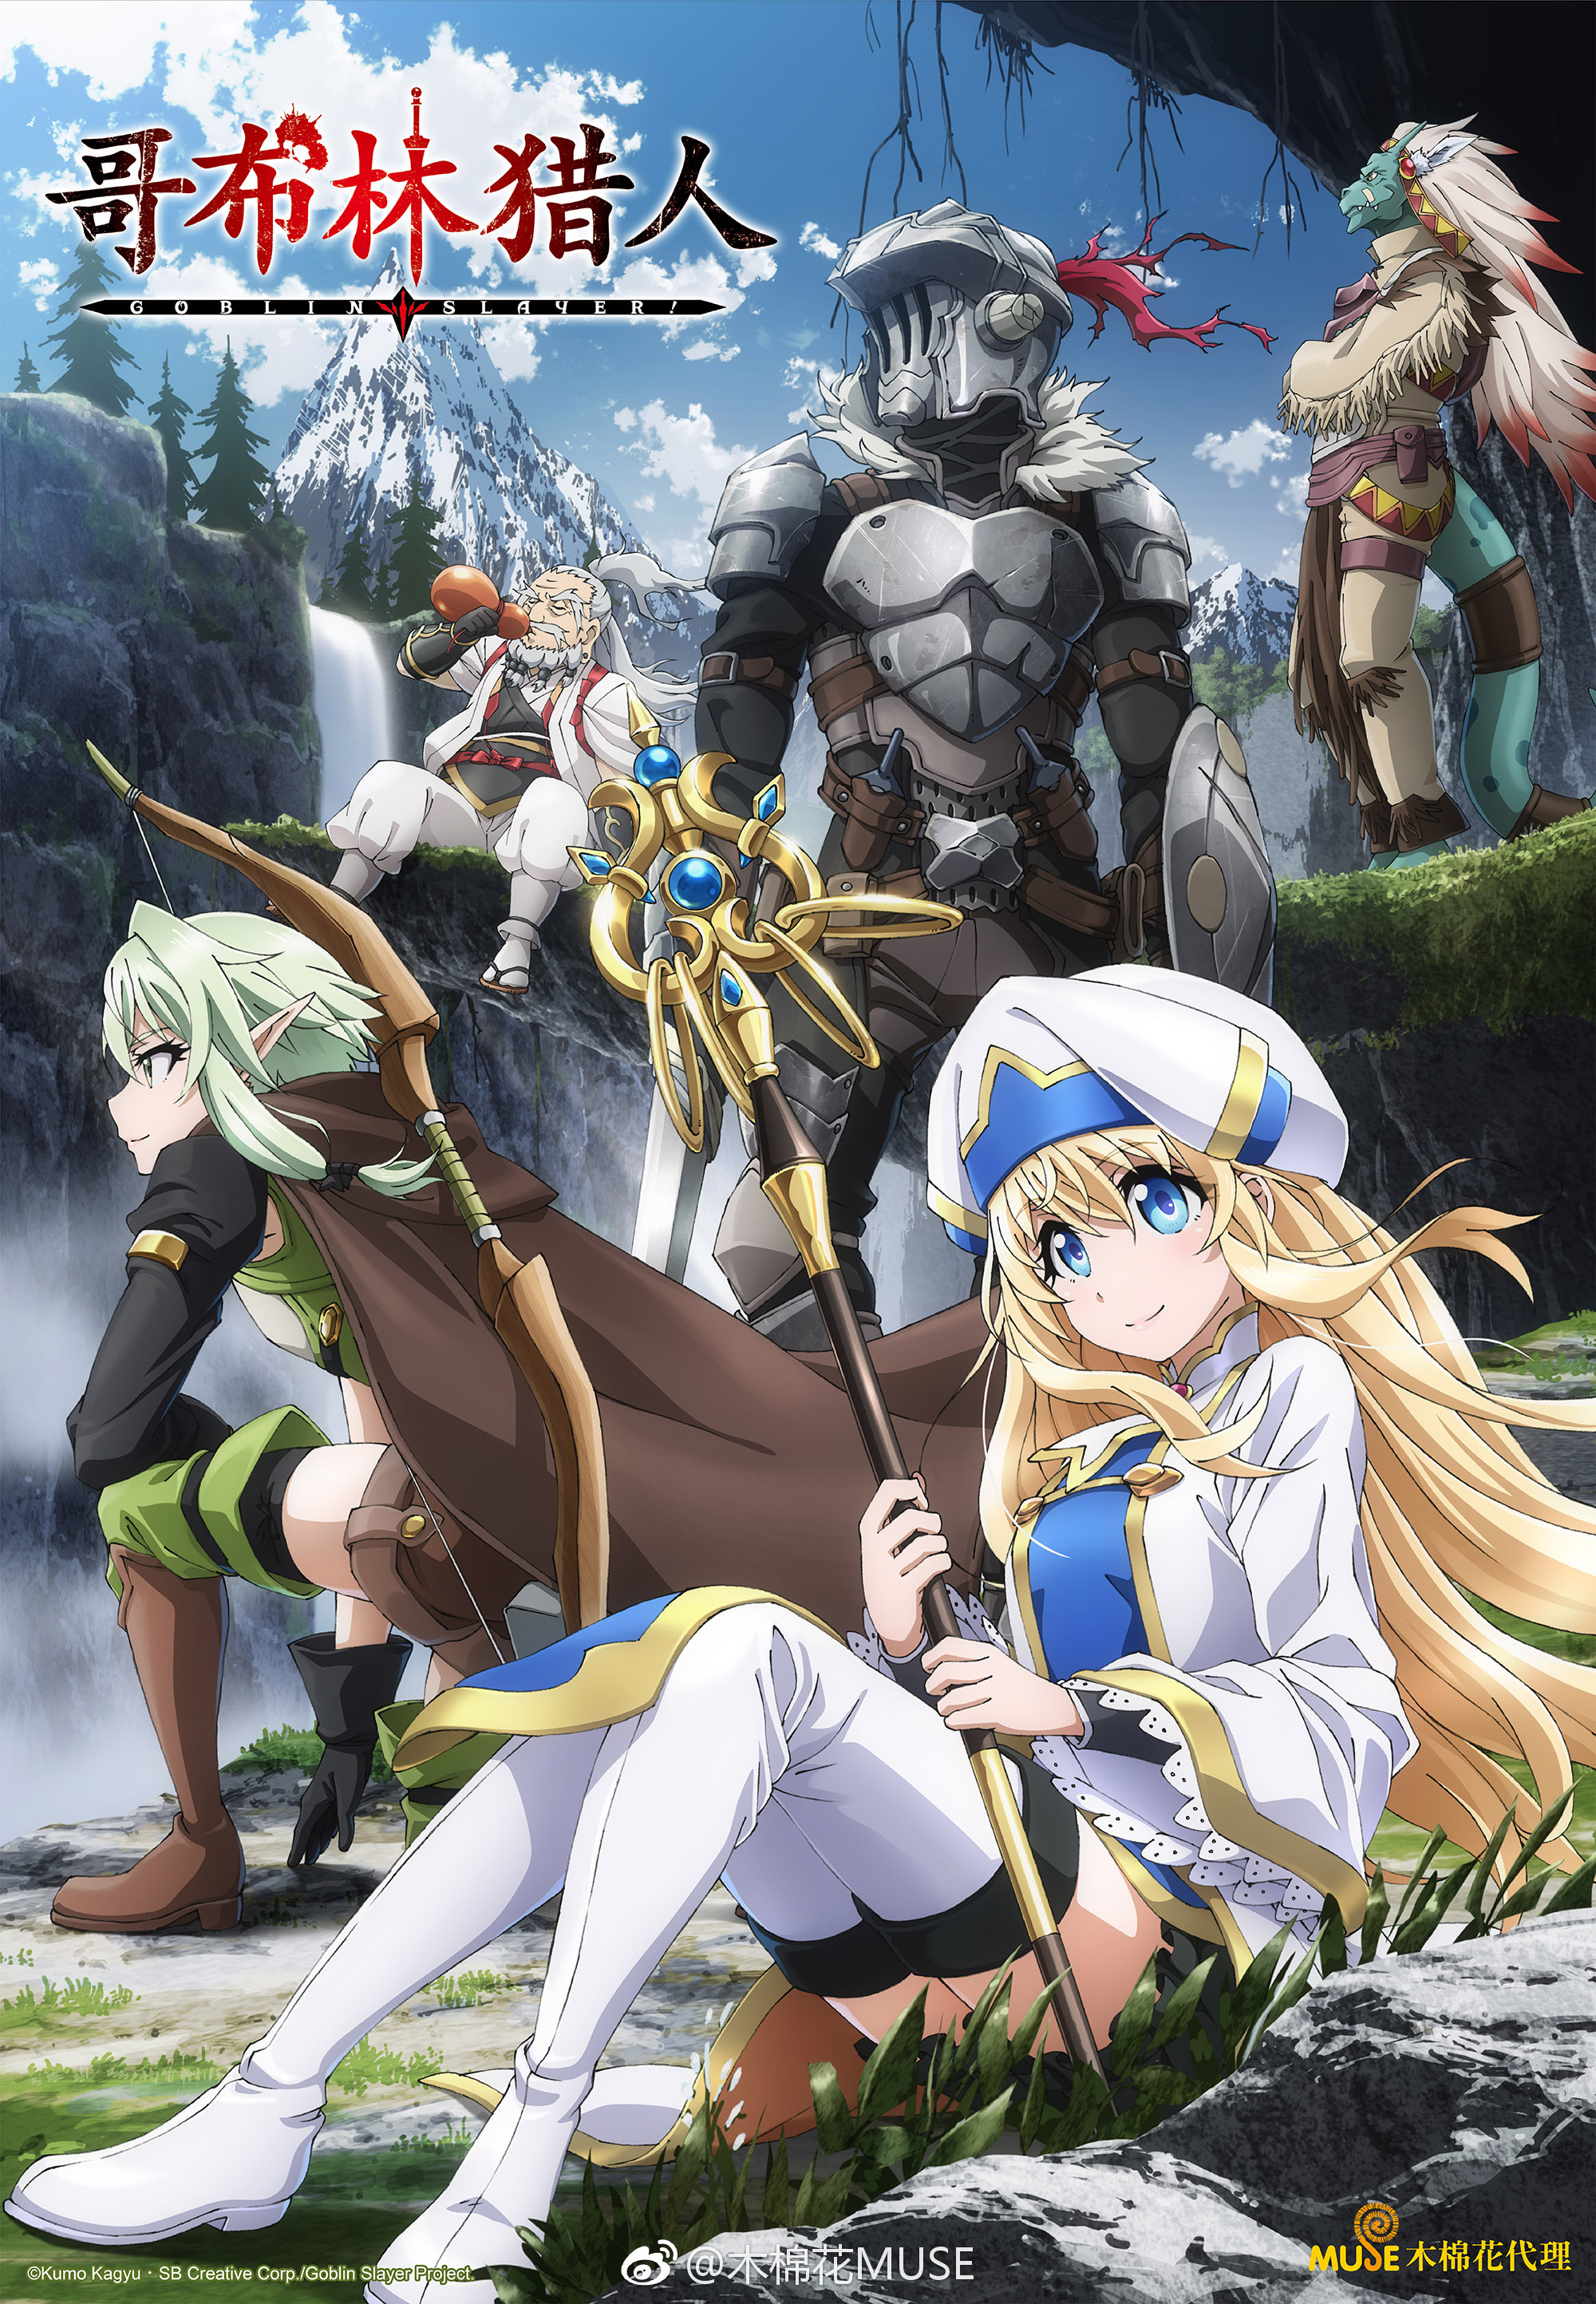 Goblin Slayer Anime Goblin Slayer Wiki